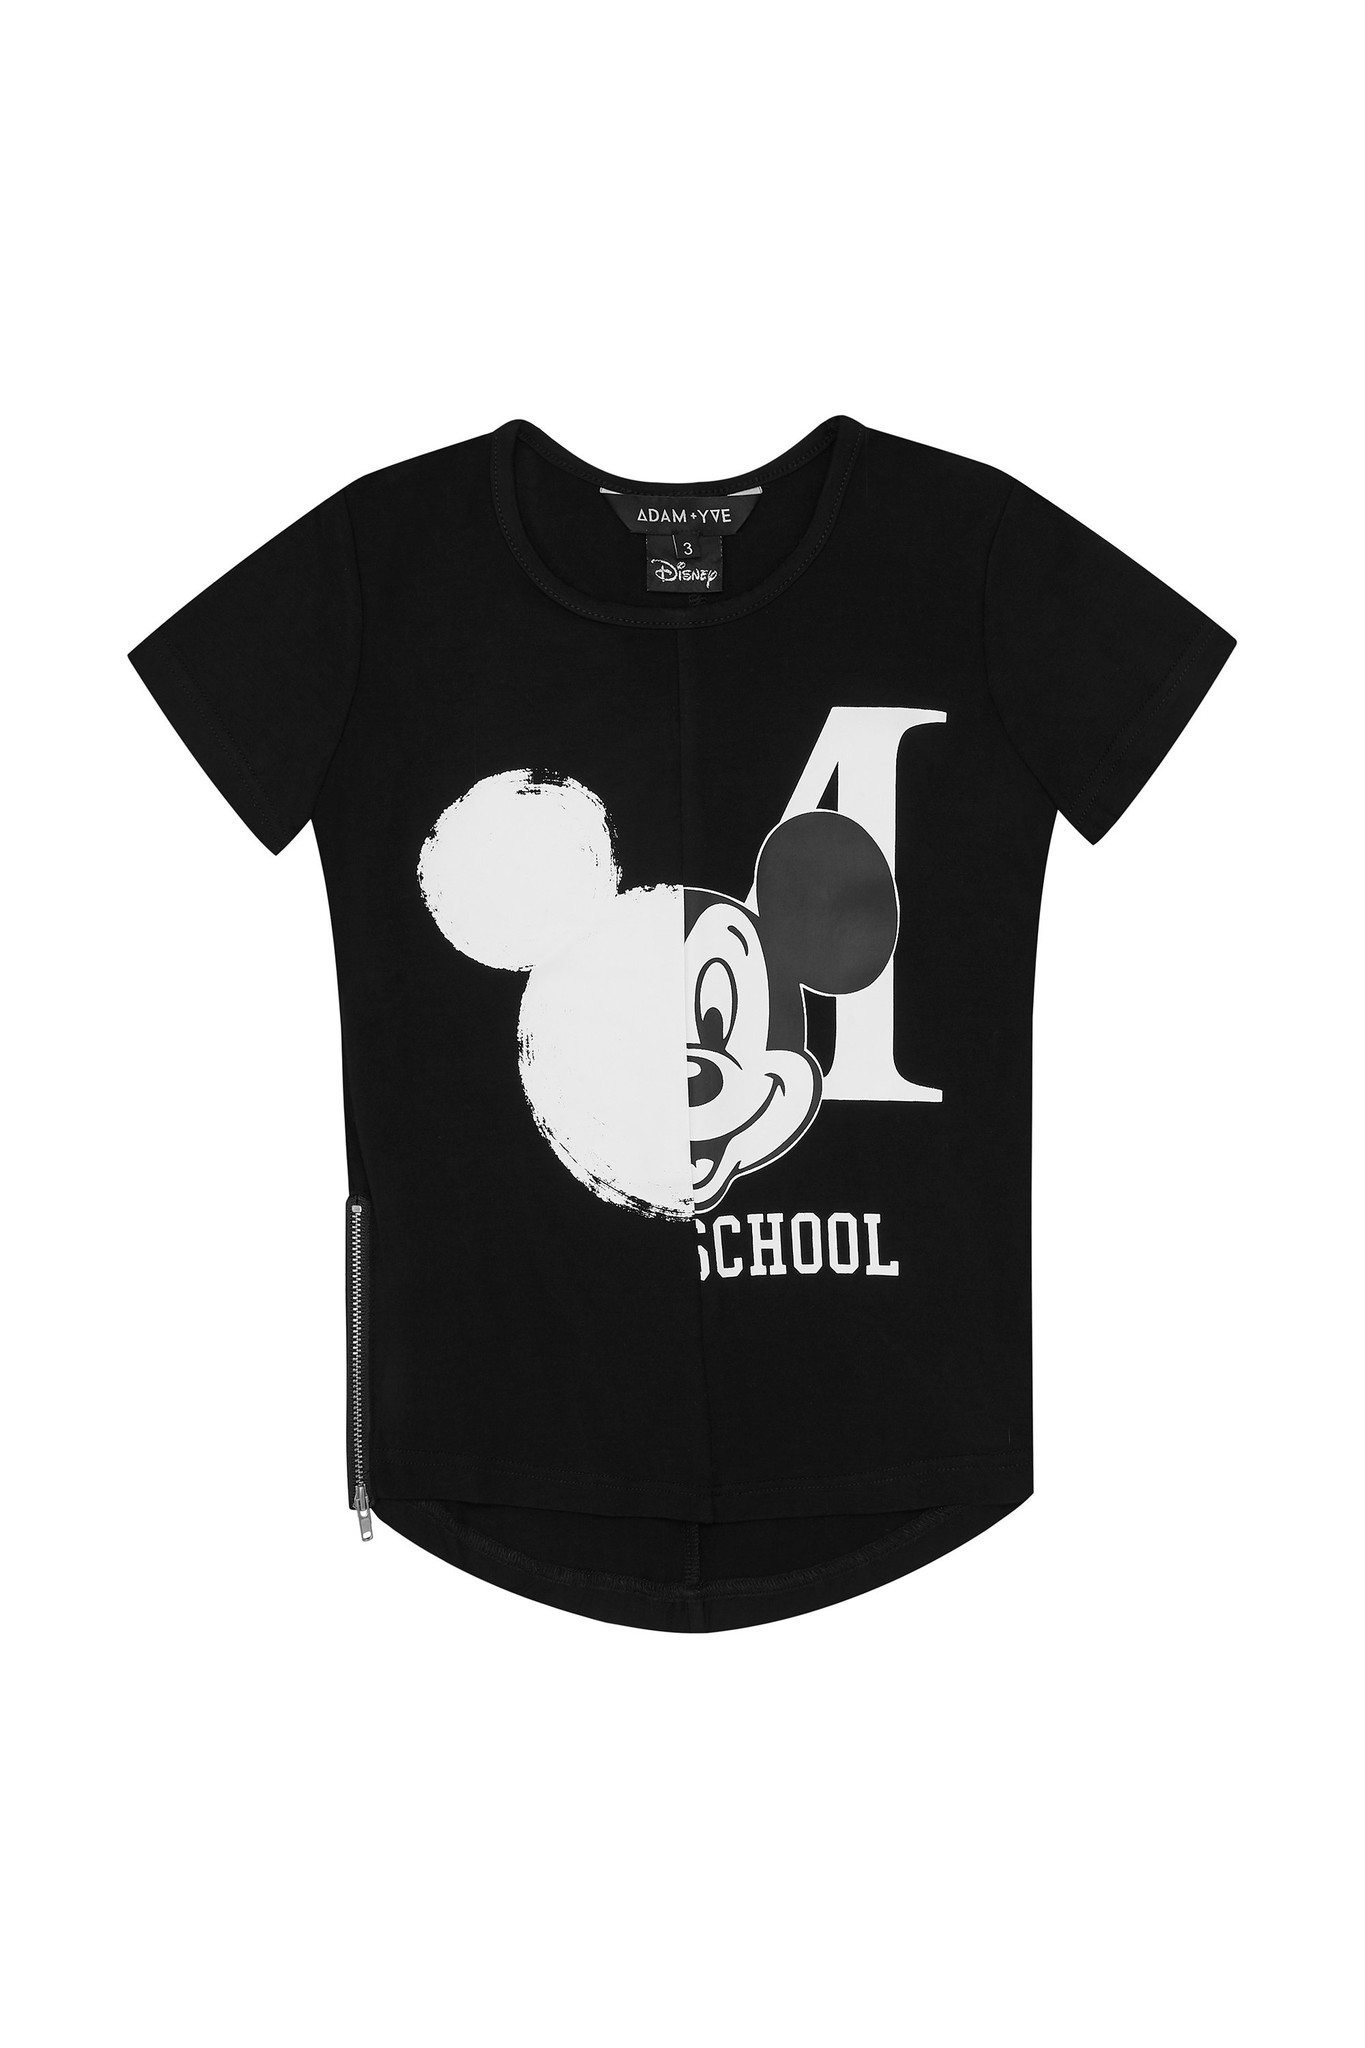 Adam + Yve BLACK BASIC SHIRT FOR BOYS | COOL CLOTHING MICKEY MOUSE | CHILDREN'S CLOTHING